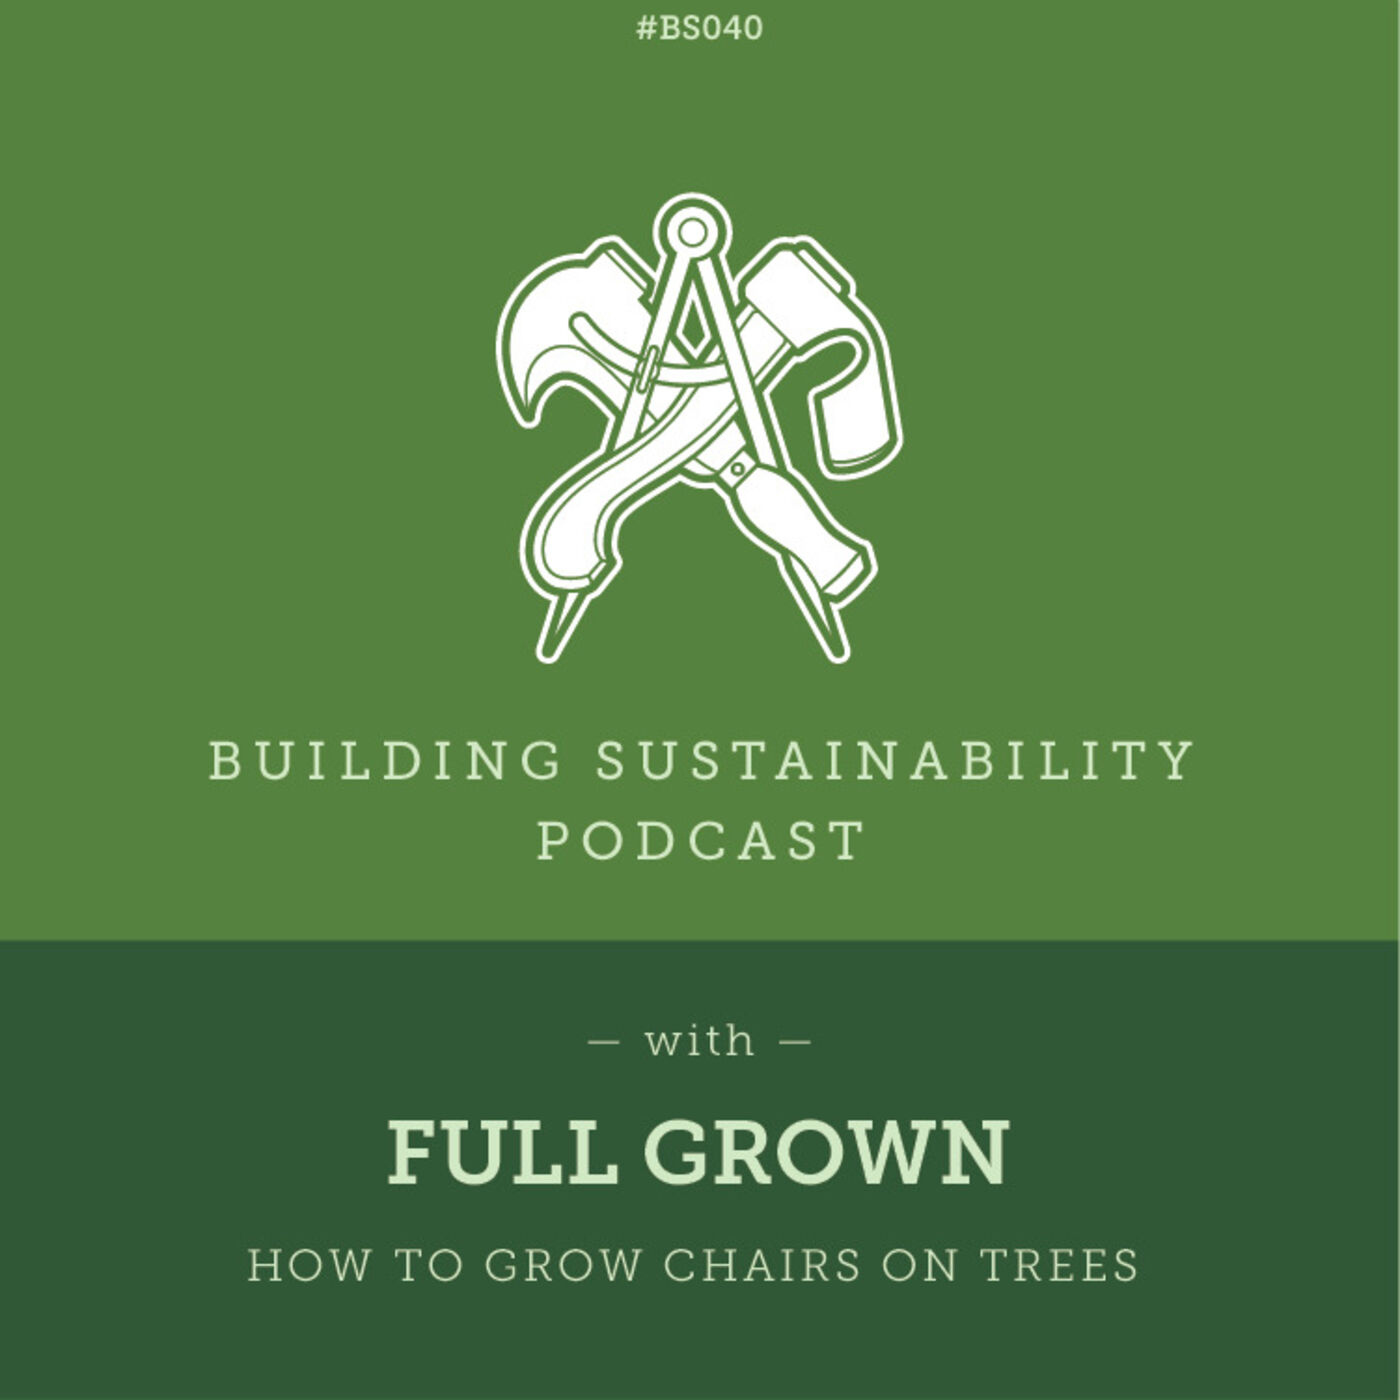 How to grow chairs on trees - Full Grown - Alice & Gavin Munro - BS040